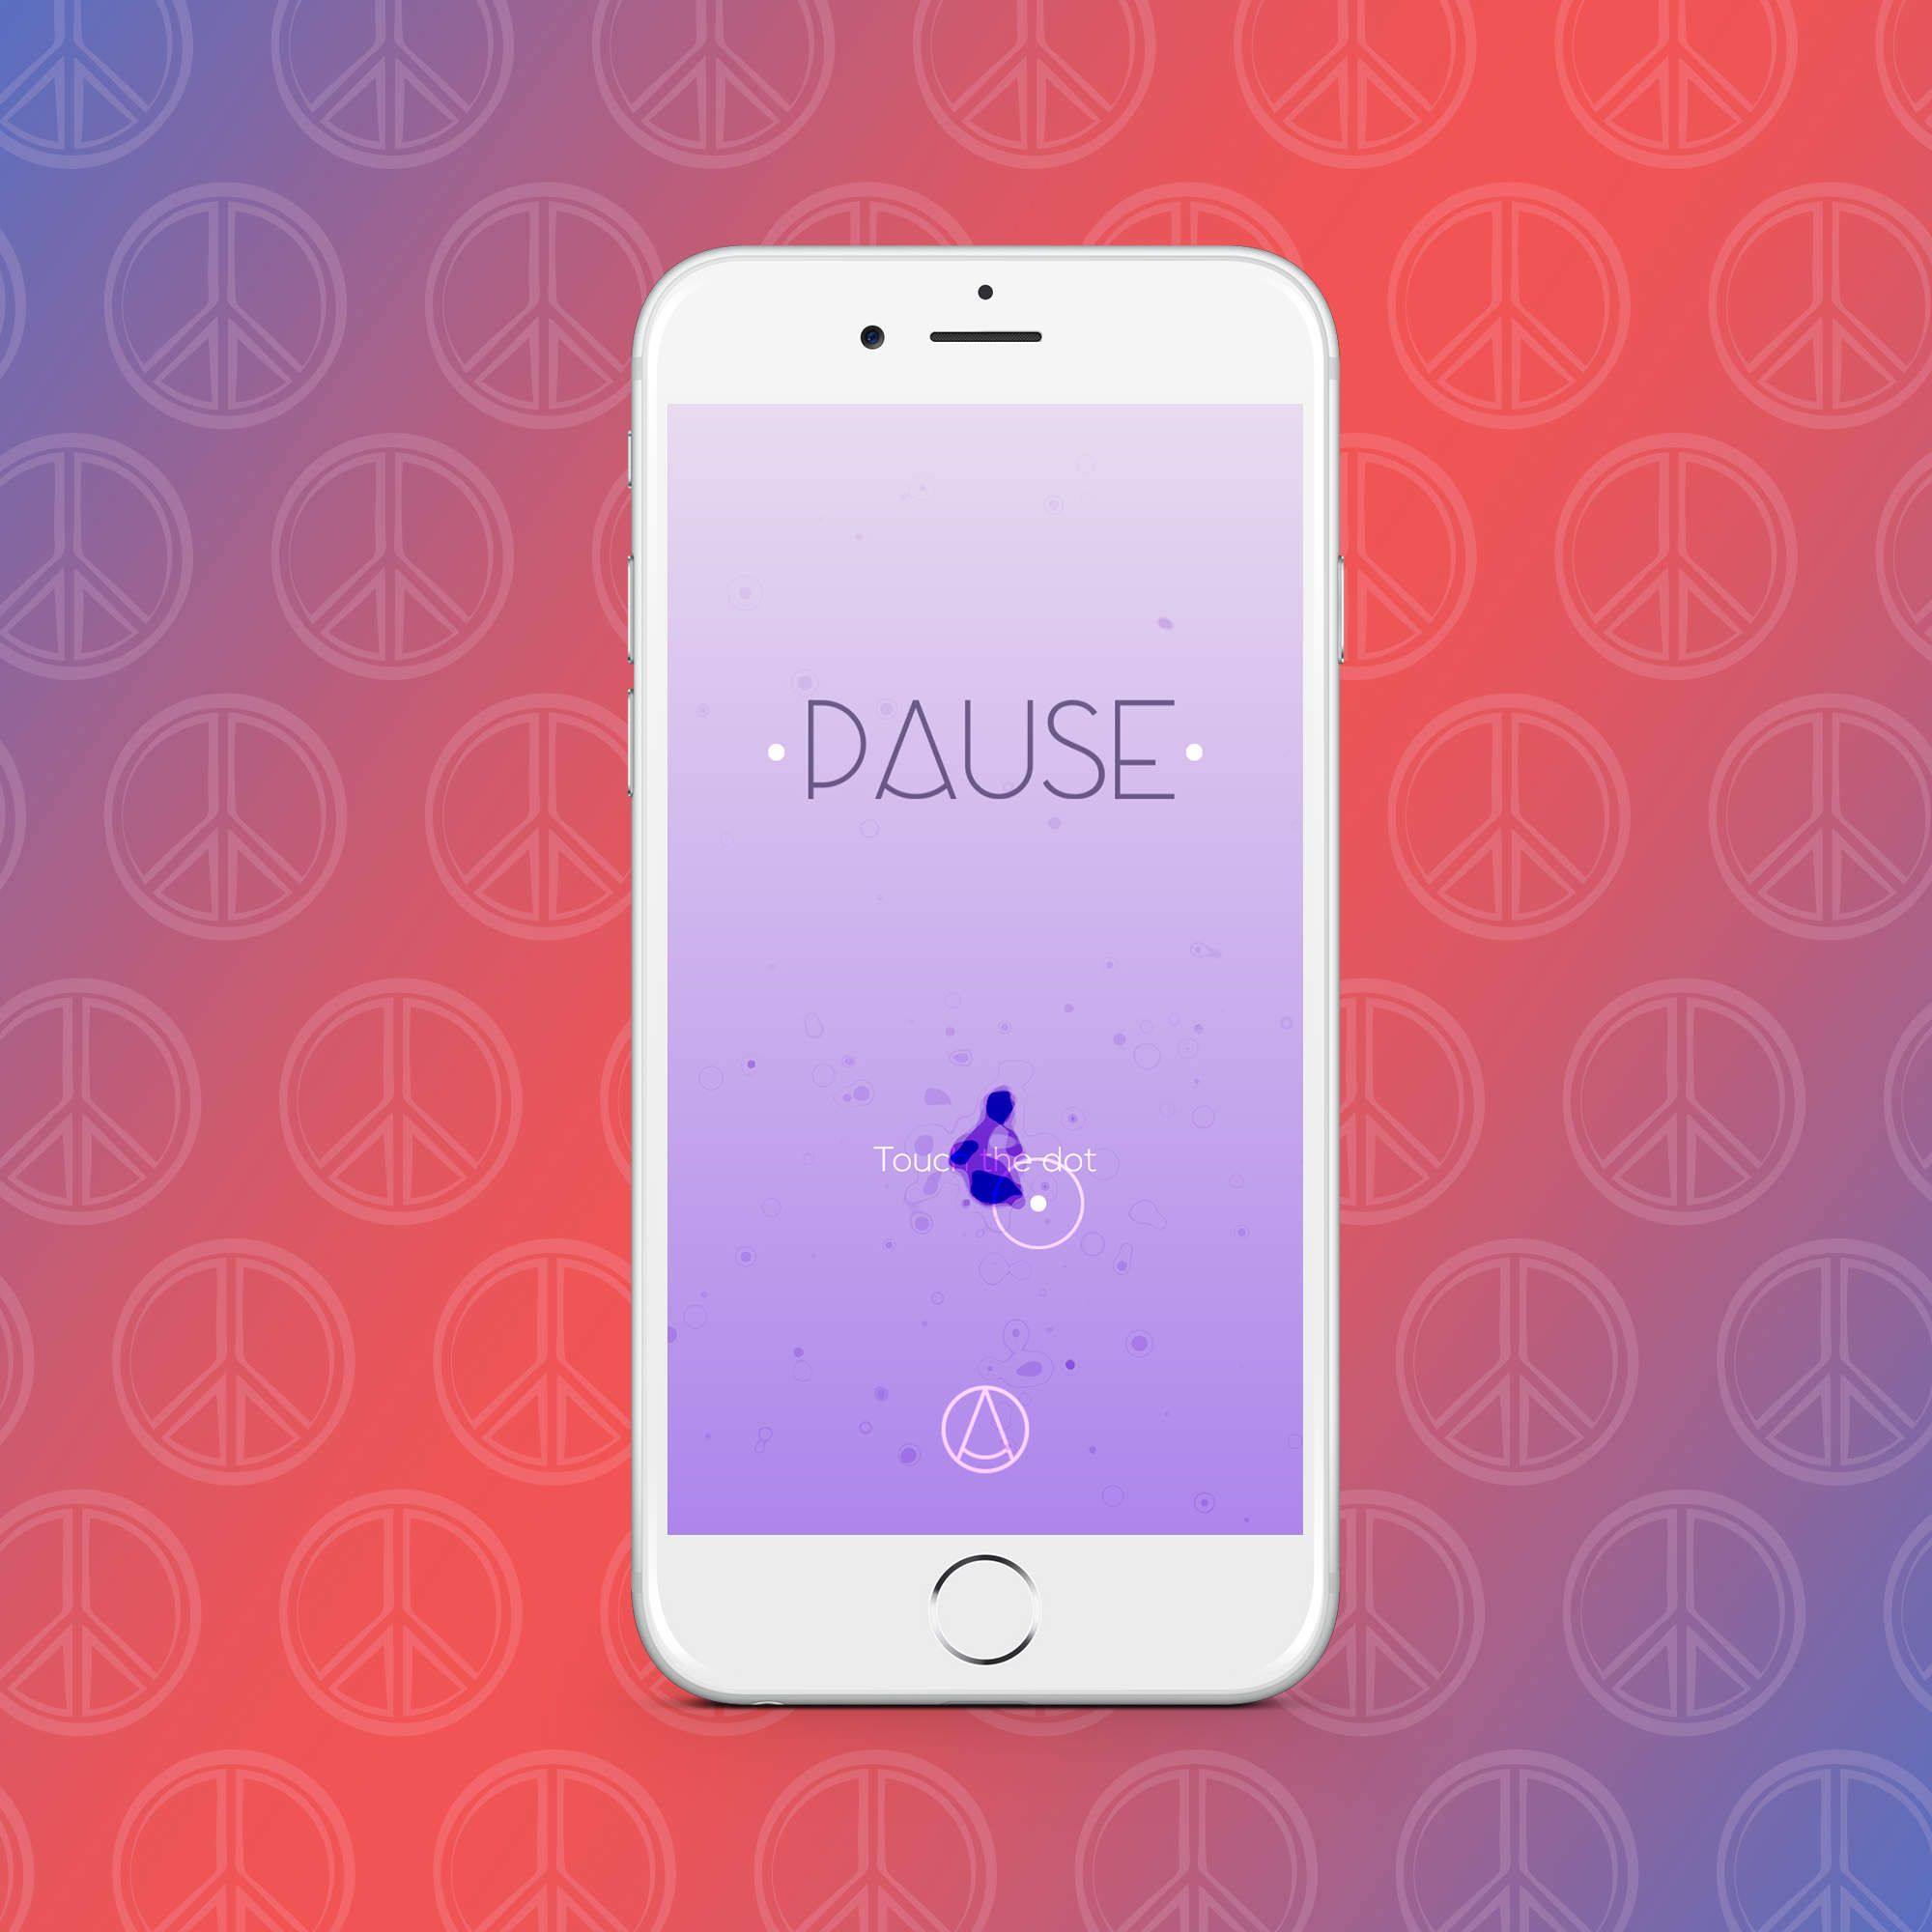 Look - Stress app for pause video